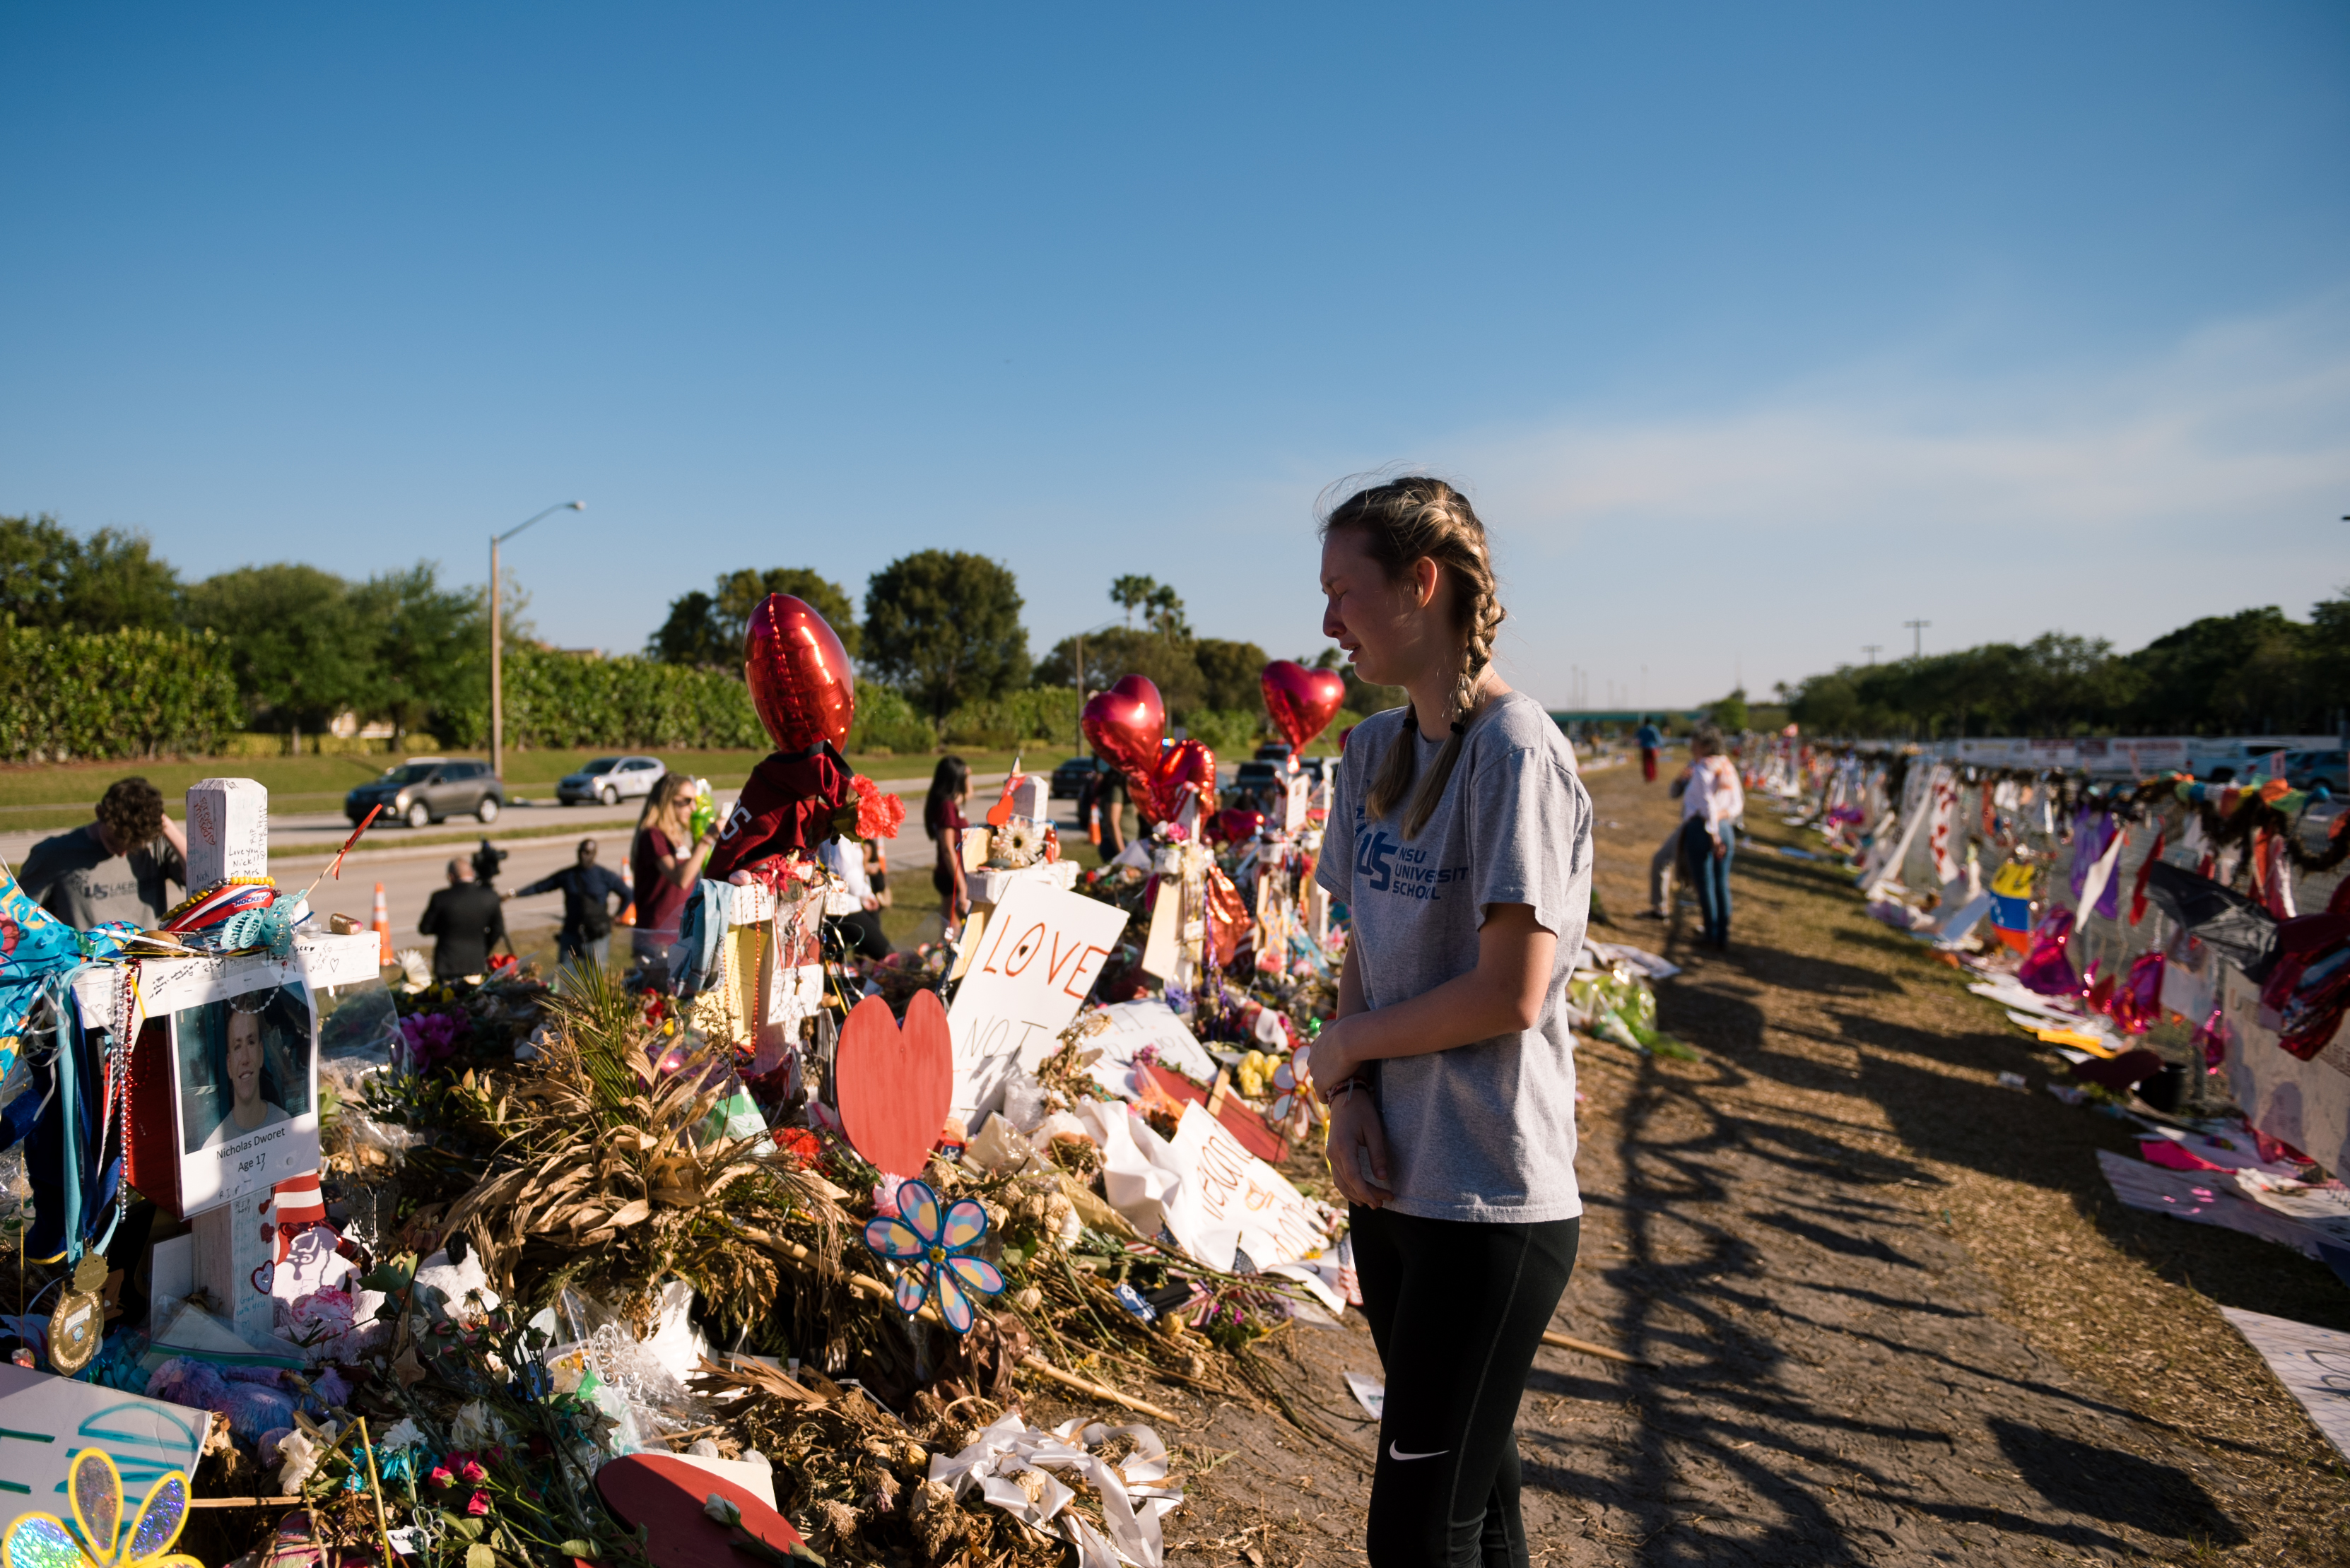 A student visits the memorial site of the 17 lives lost at Marjory Stoneman Douglas.